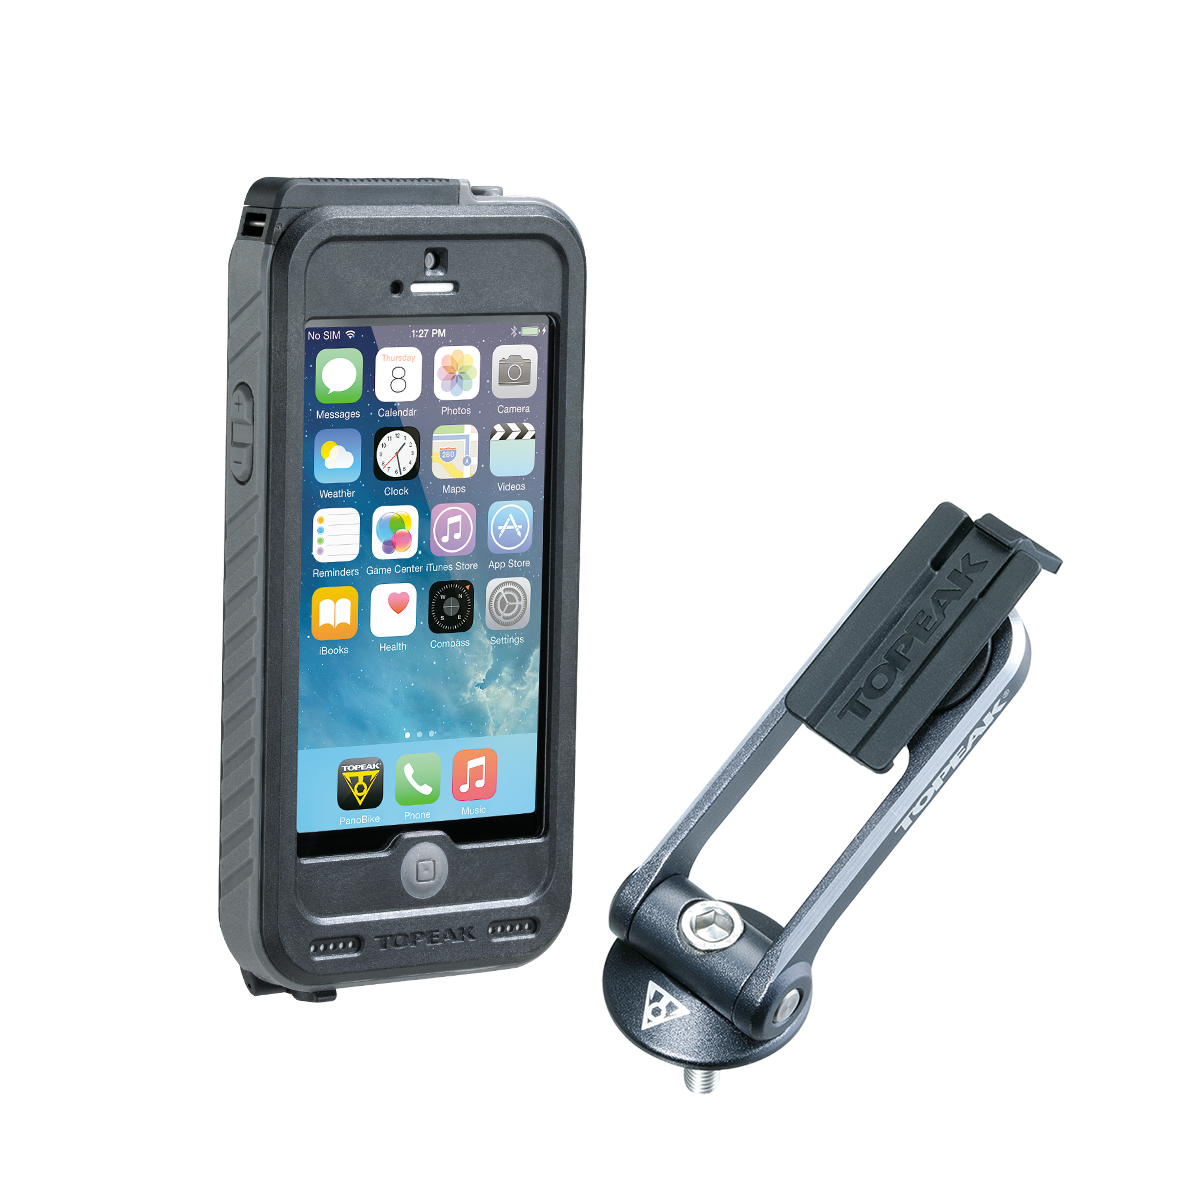 WEATHERPROOF RIDECASE® WITH POWERPACK 3150 MAH | Topeak